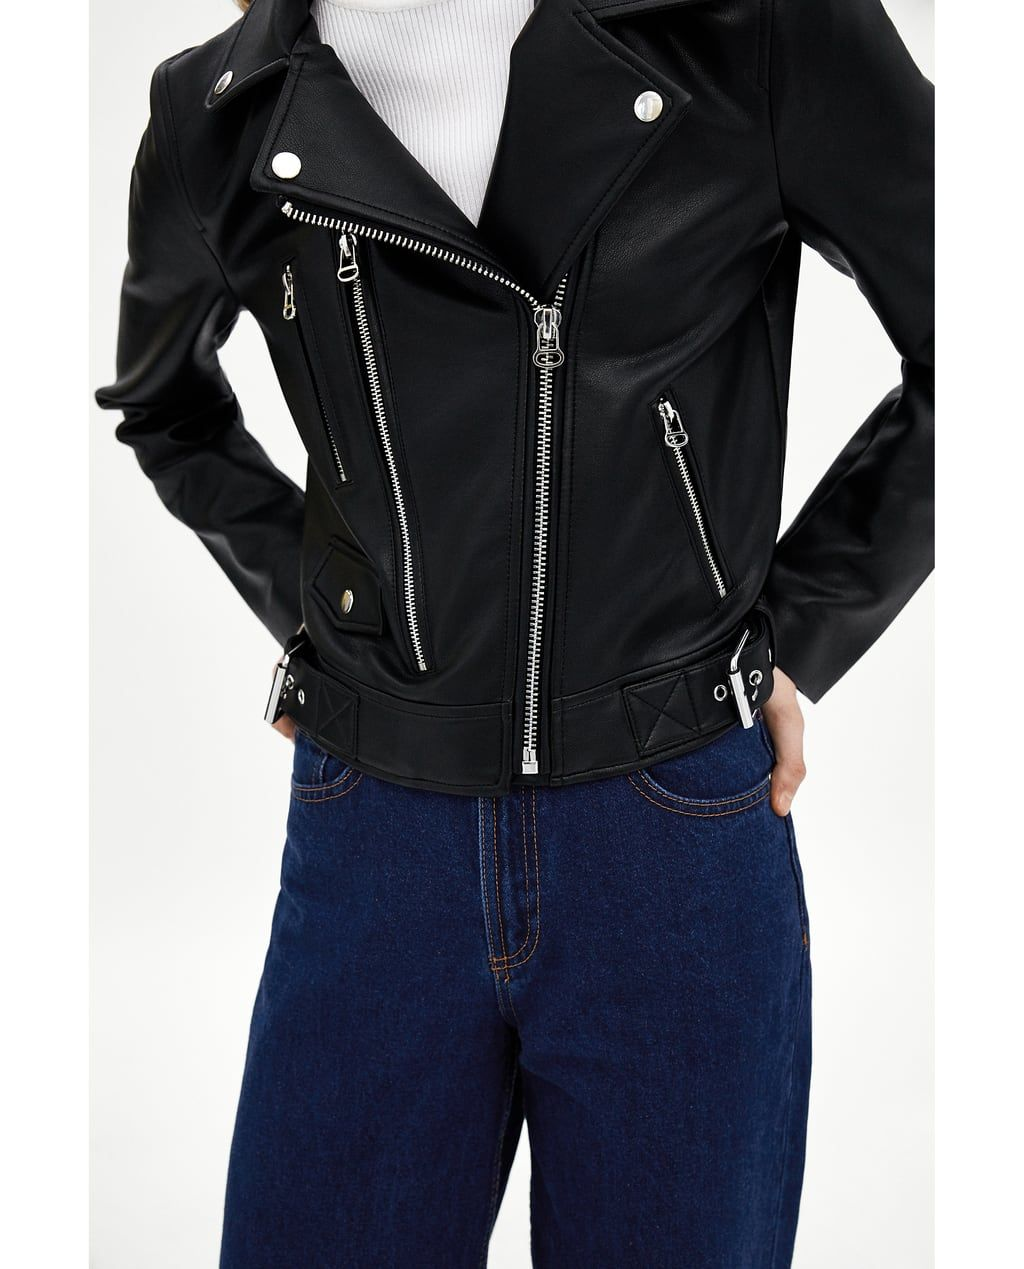 Image 6 of FAUX LEATHER BIKER JACKET from Zara (With